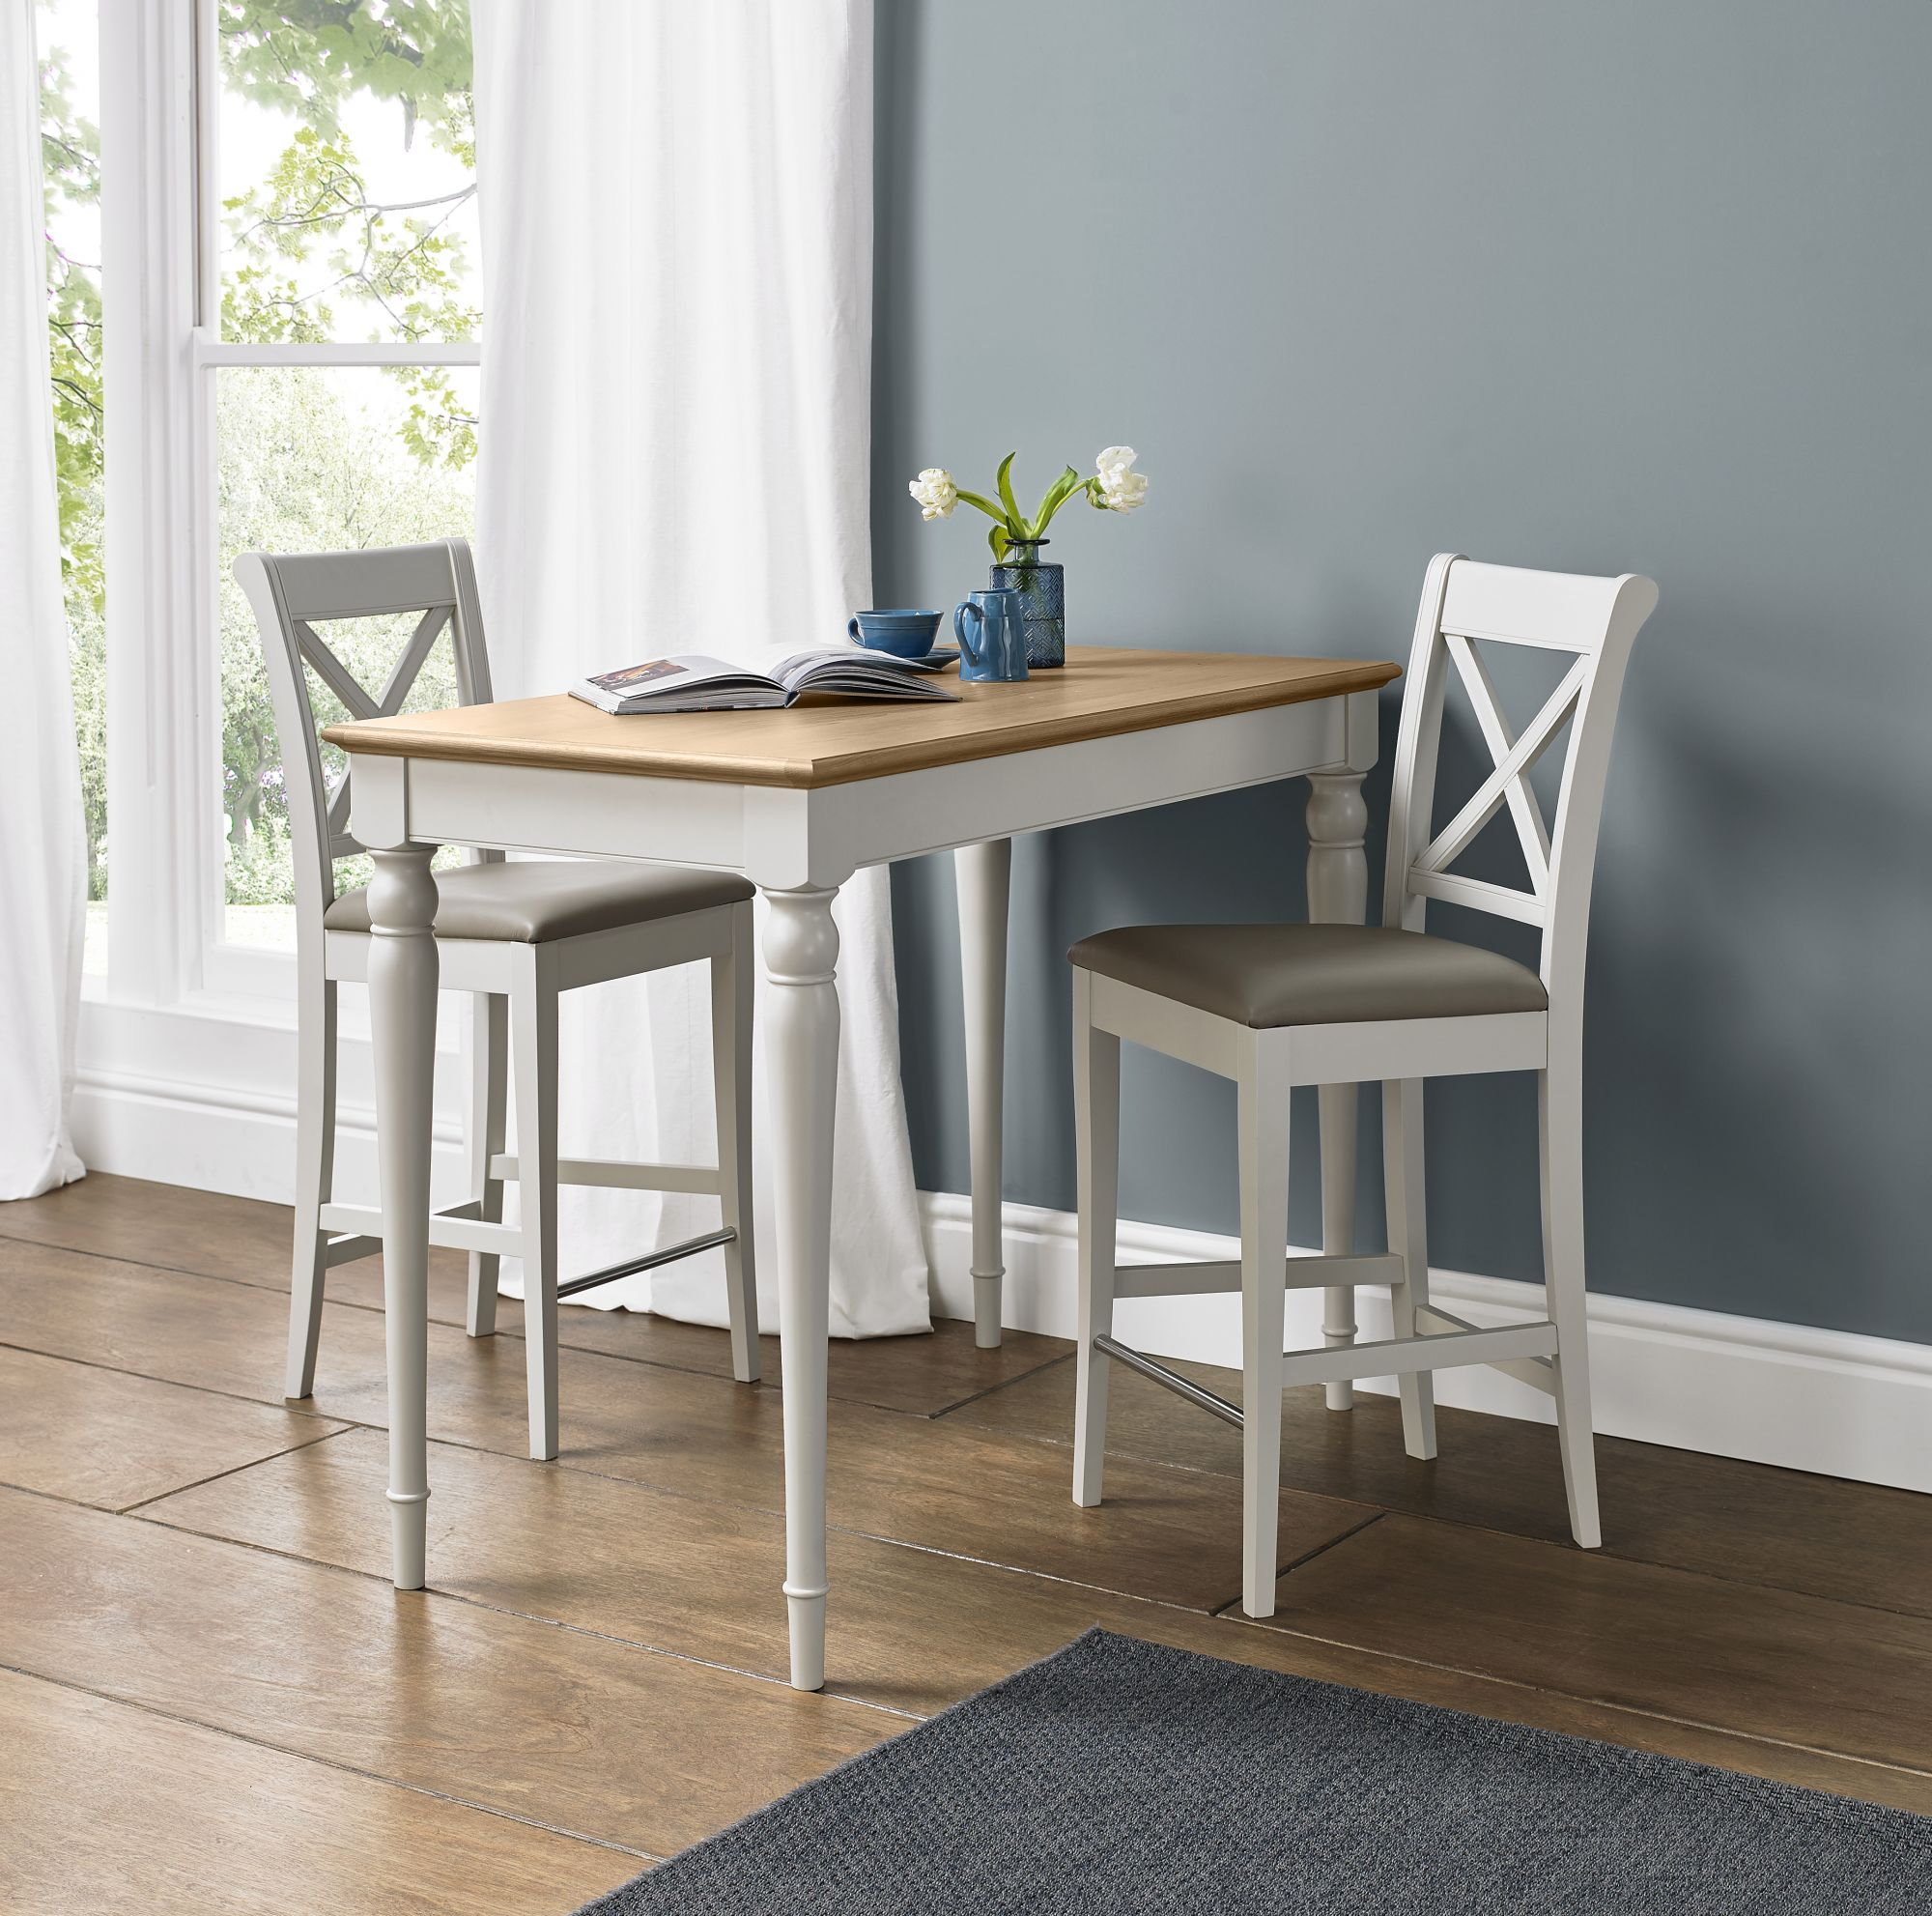 Photo of Bentley designs hampstead two tone bar table & 2 x back bar stools